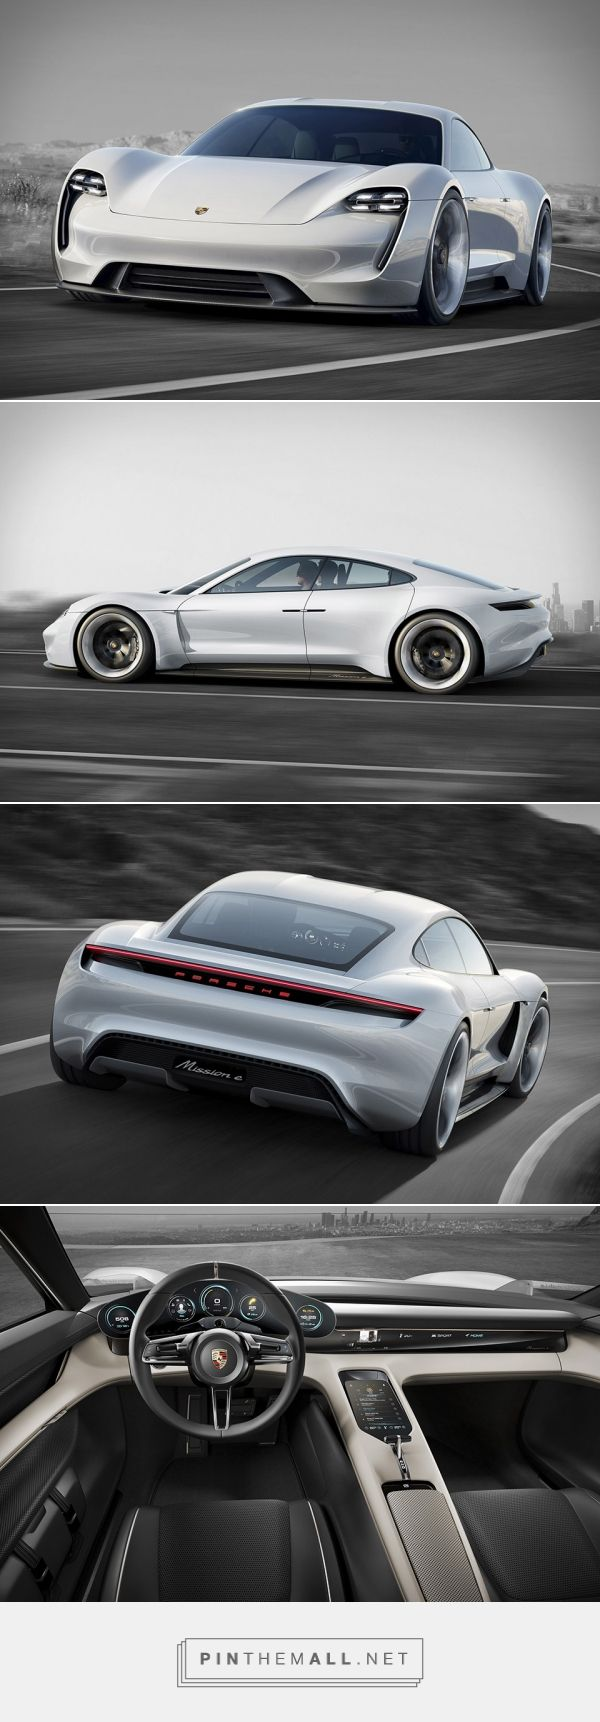 Porsche Mission E Concept - electric 4-door awesomeness!  #RePin by AT Social Media Marketing - Pinterest Marketing Specialists ATSocialMedia.co.uk